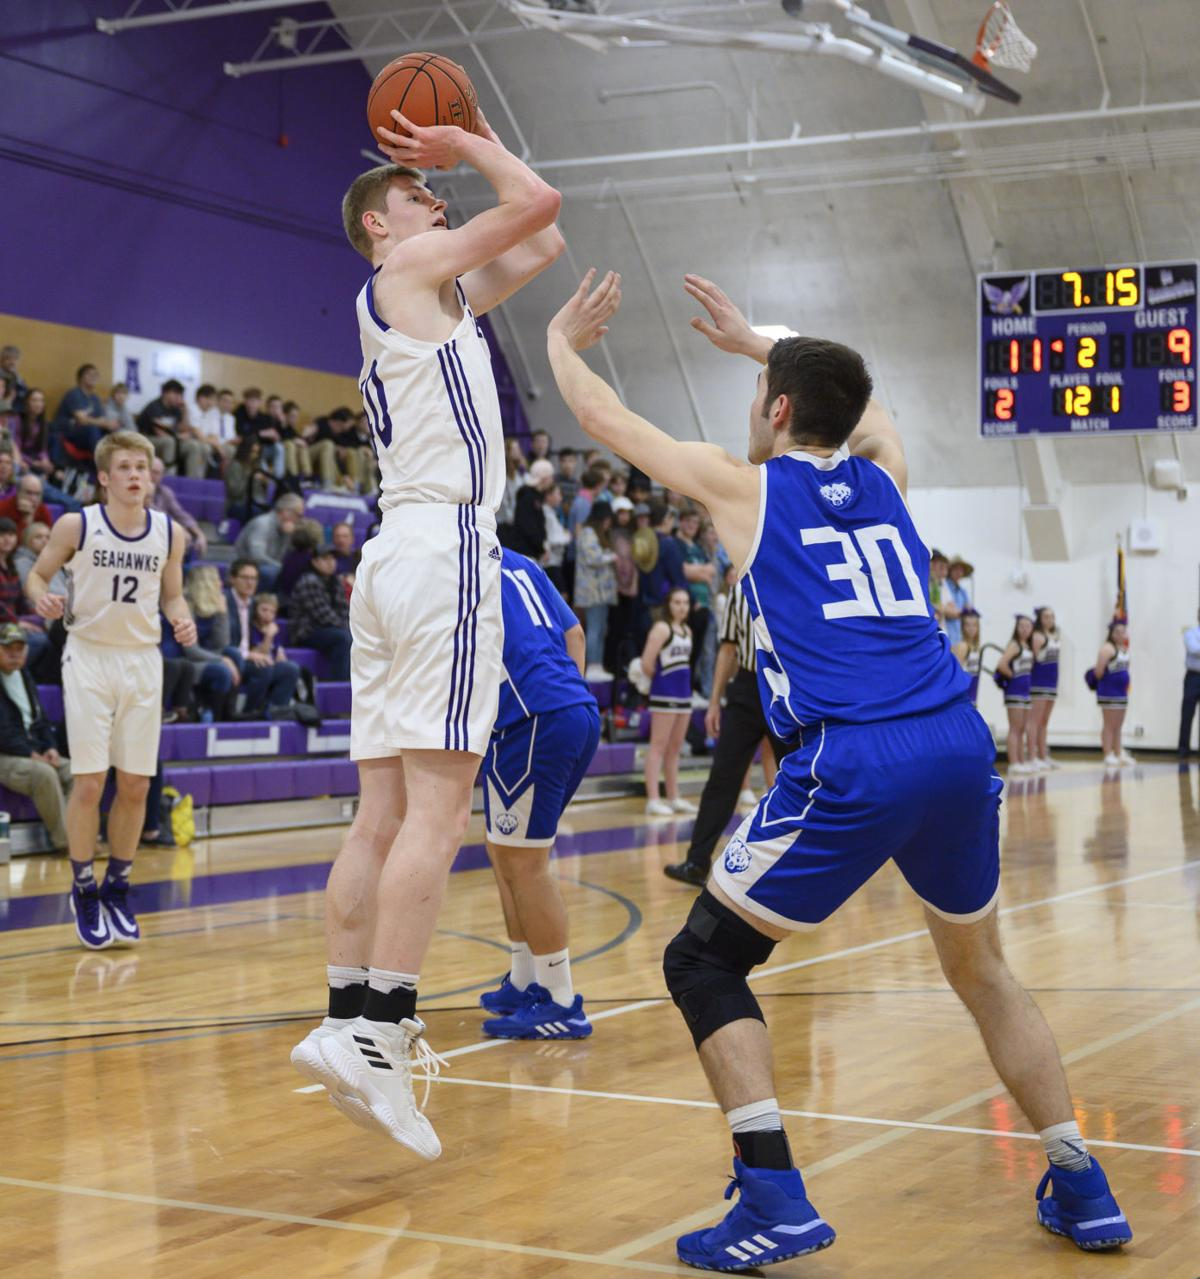 Sedro-Woolley at Anacortes boys basketball